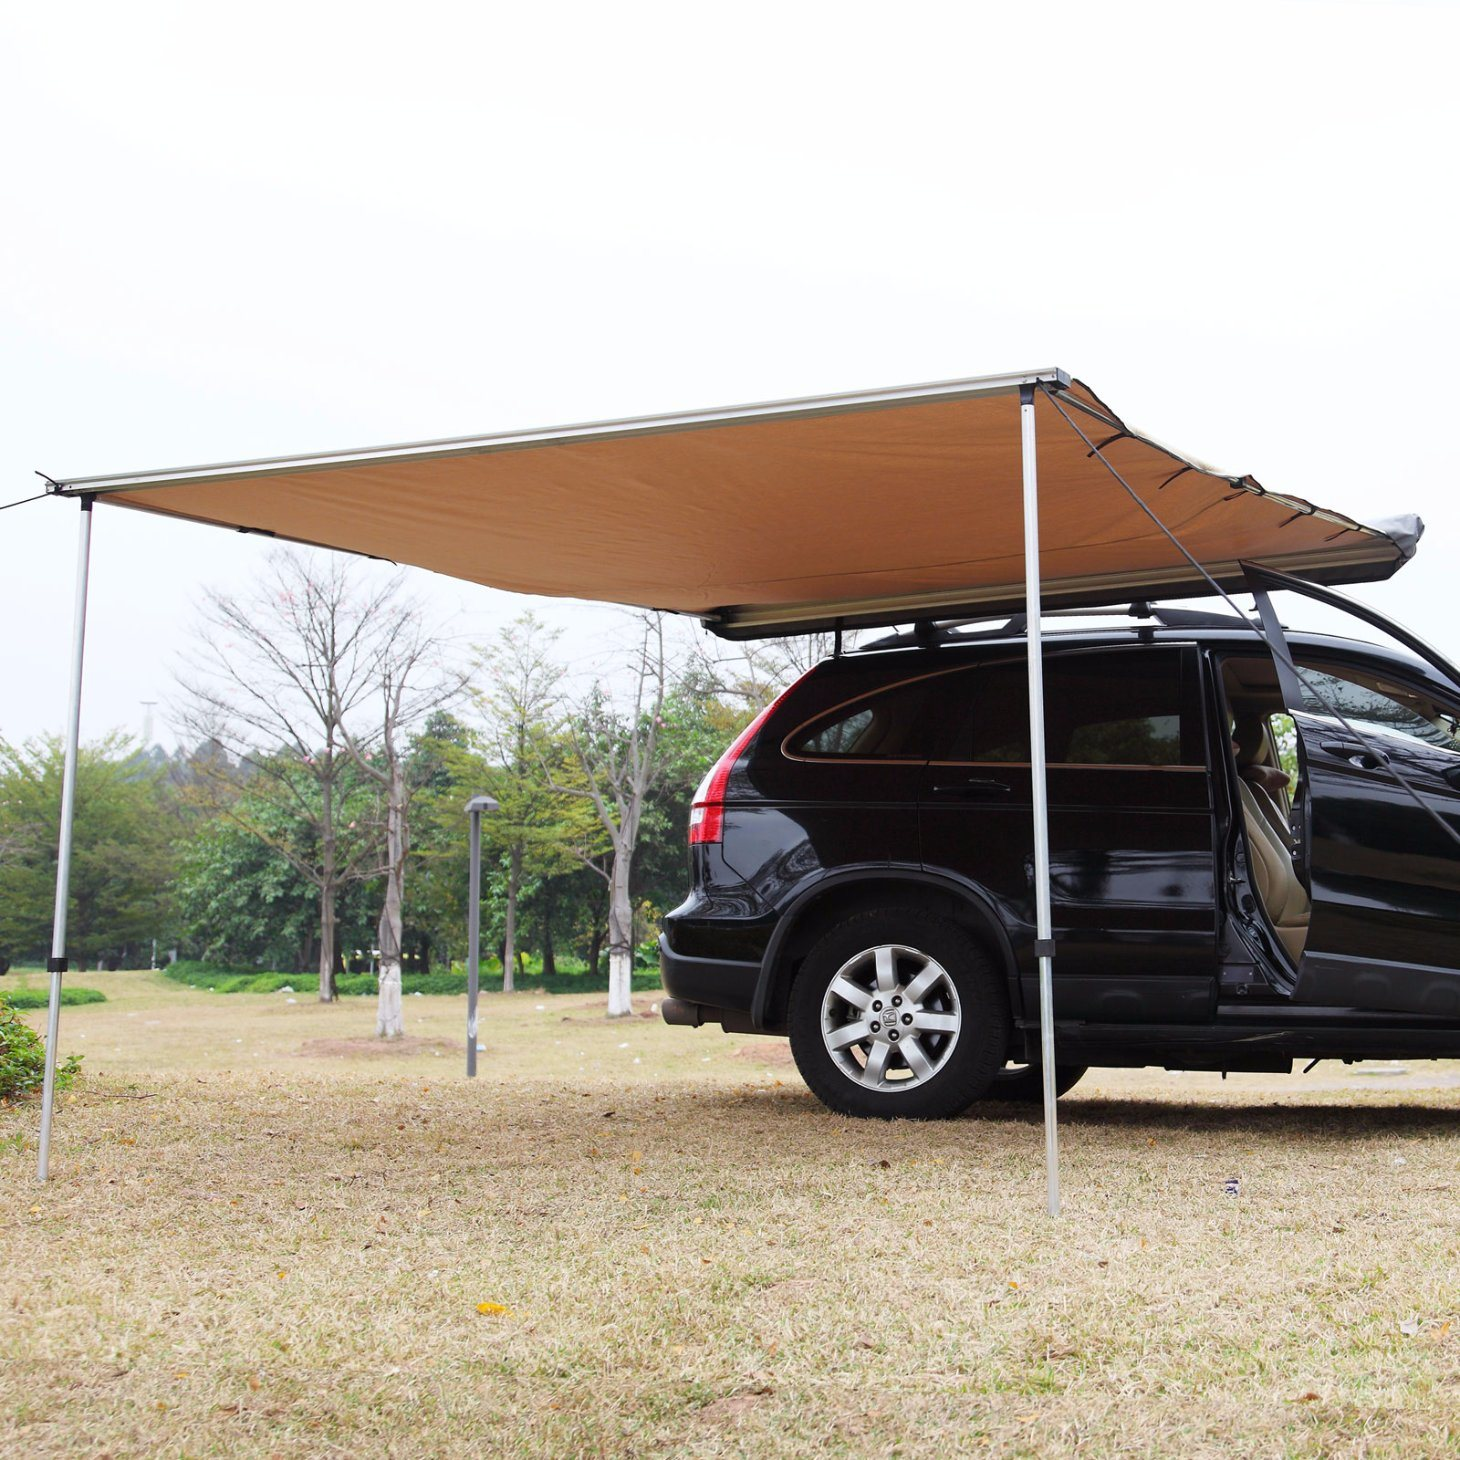 2017 New Style Canvas Car Awning Vehicle Side Awning Car Tents for Picnic